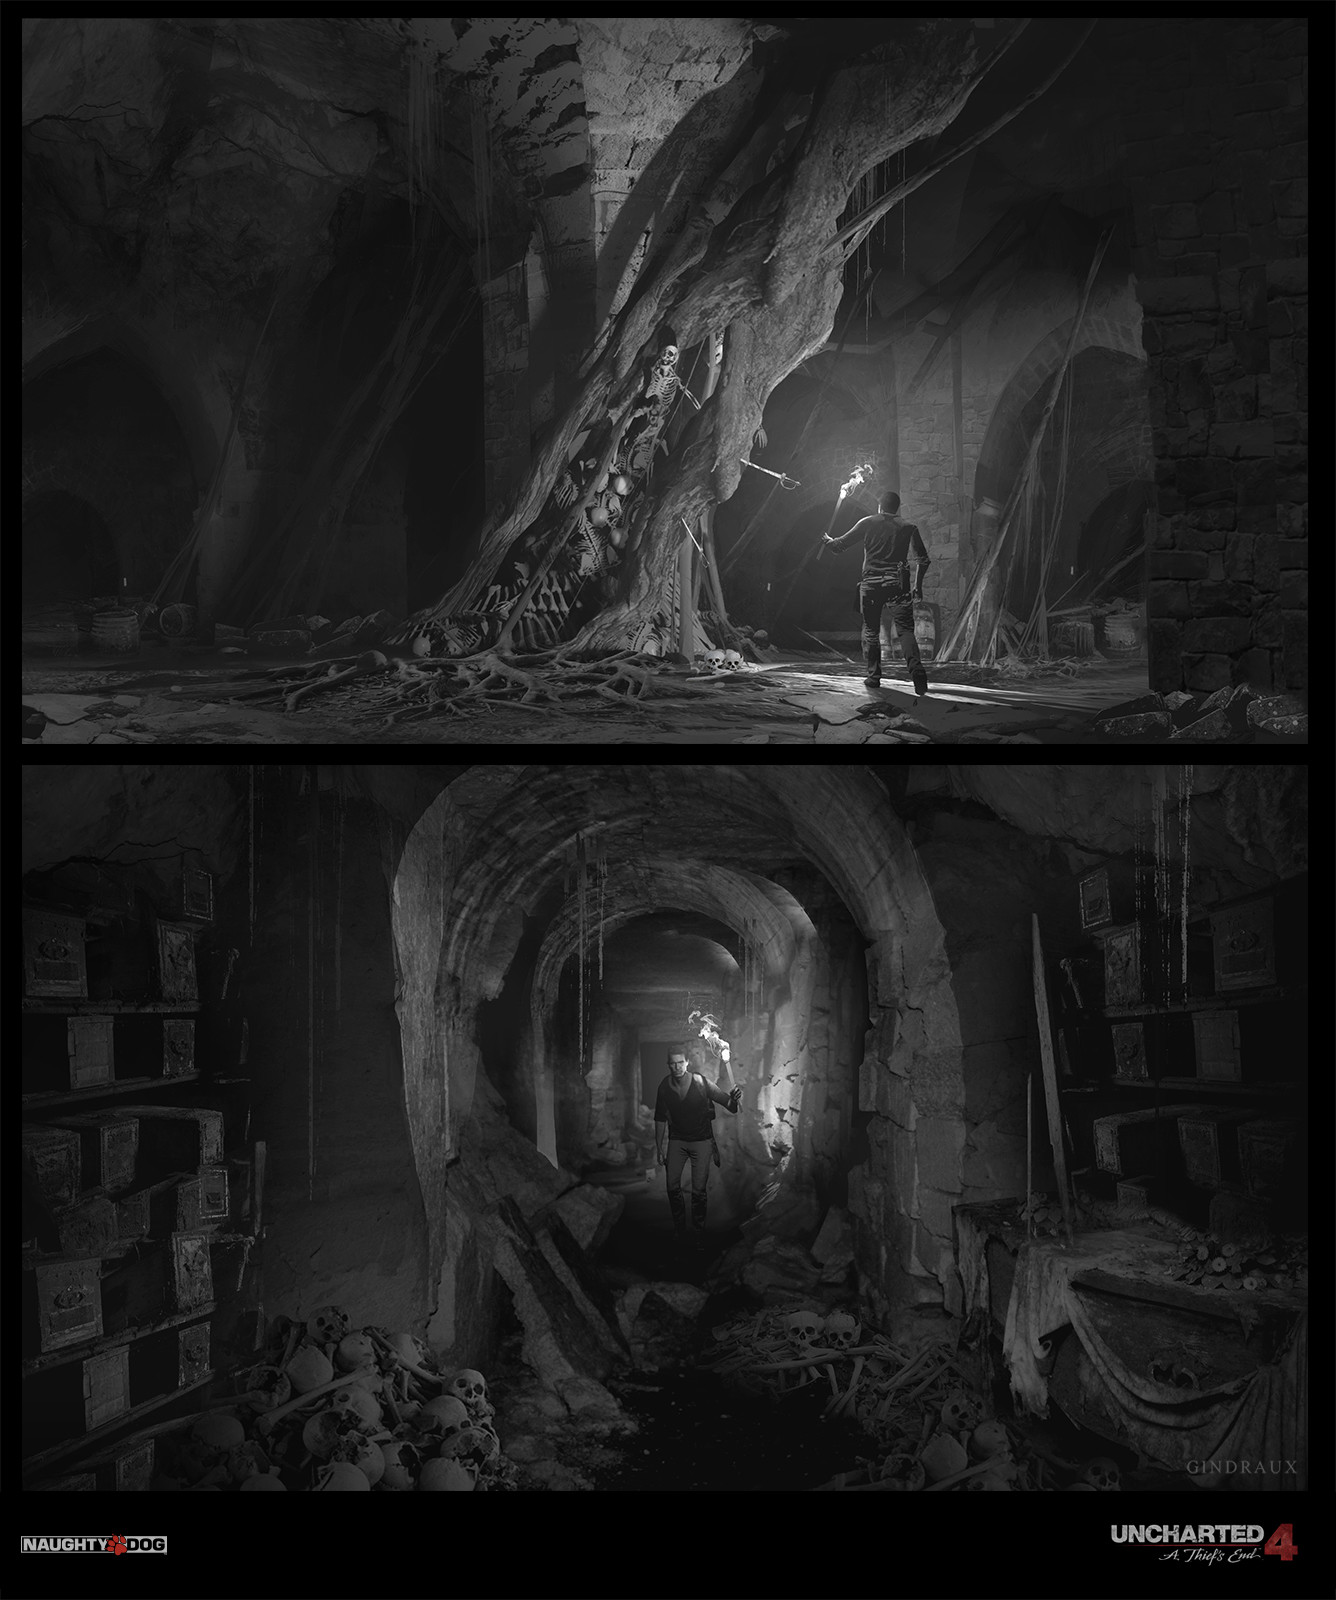 Nick Gindraux - Concept Art